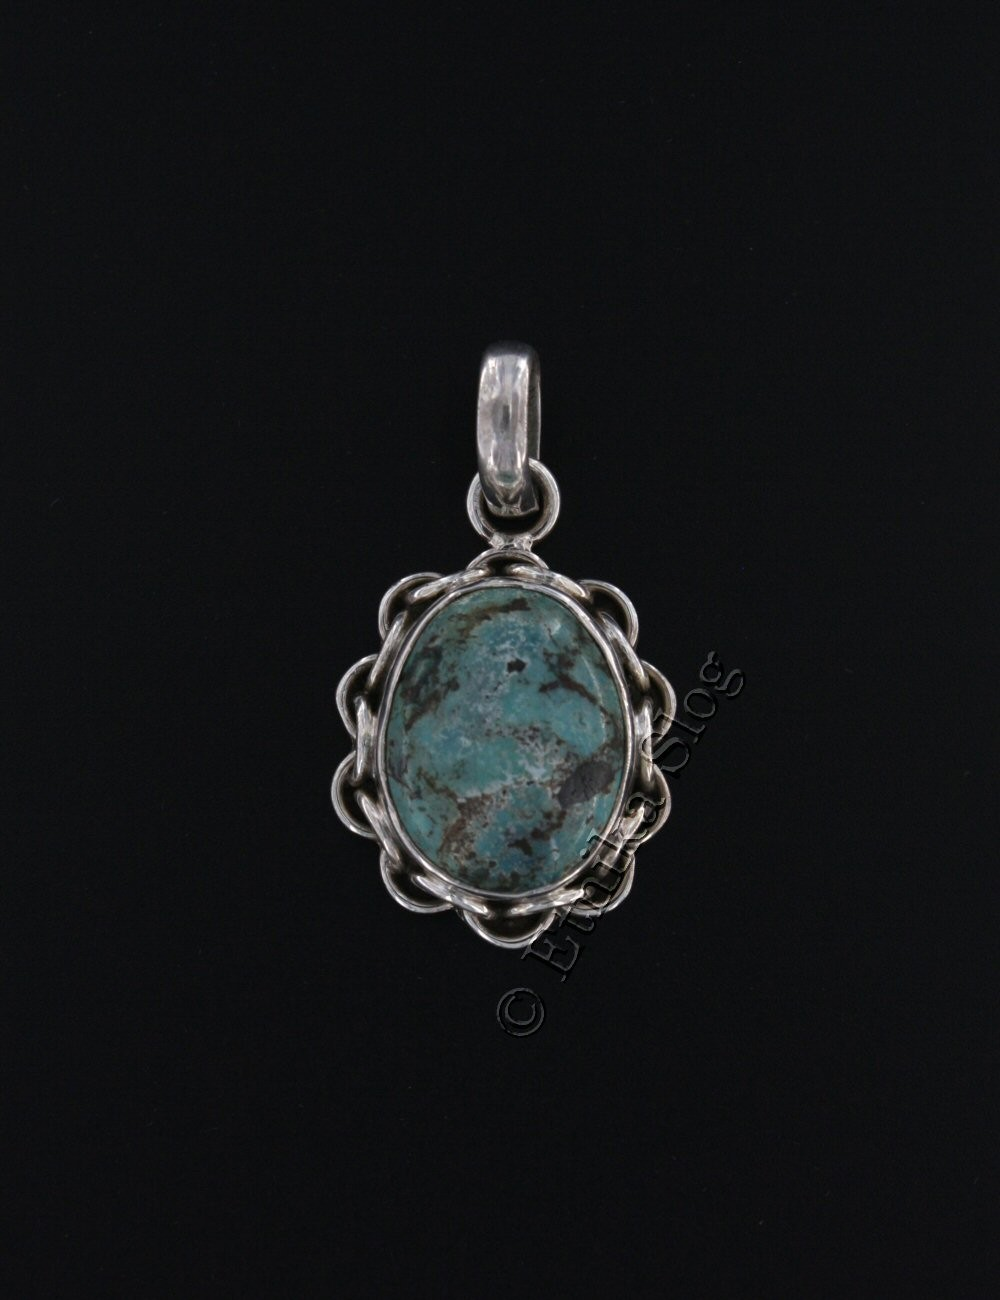 SILVER AND STONE PENDANTS ARG-PP670-01 - Oriente Import S.r.l.